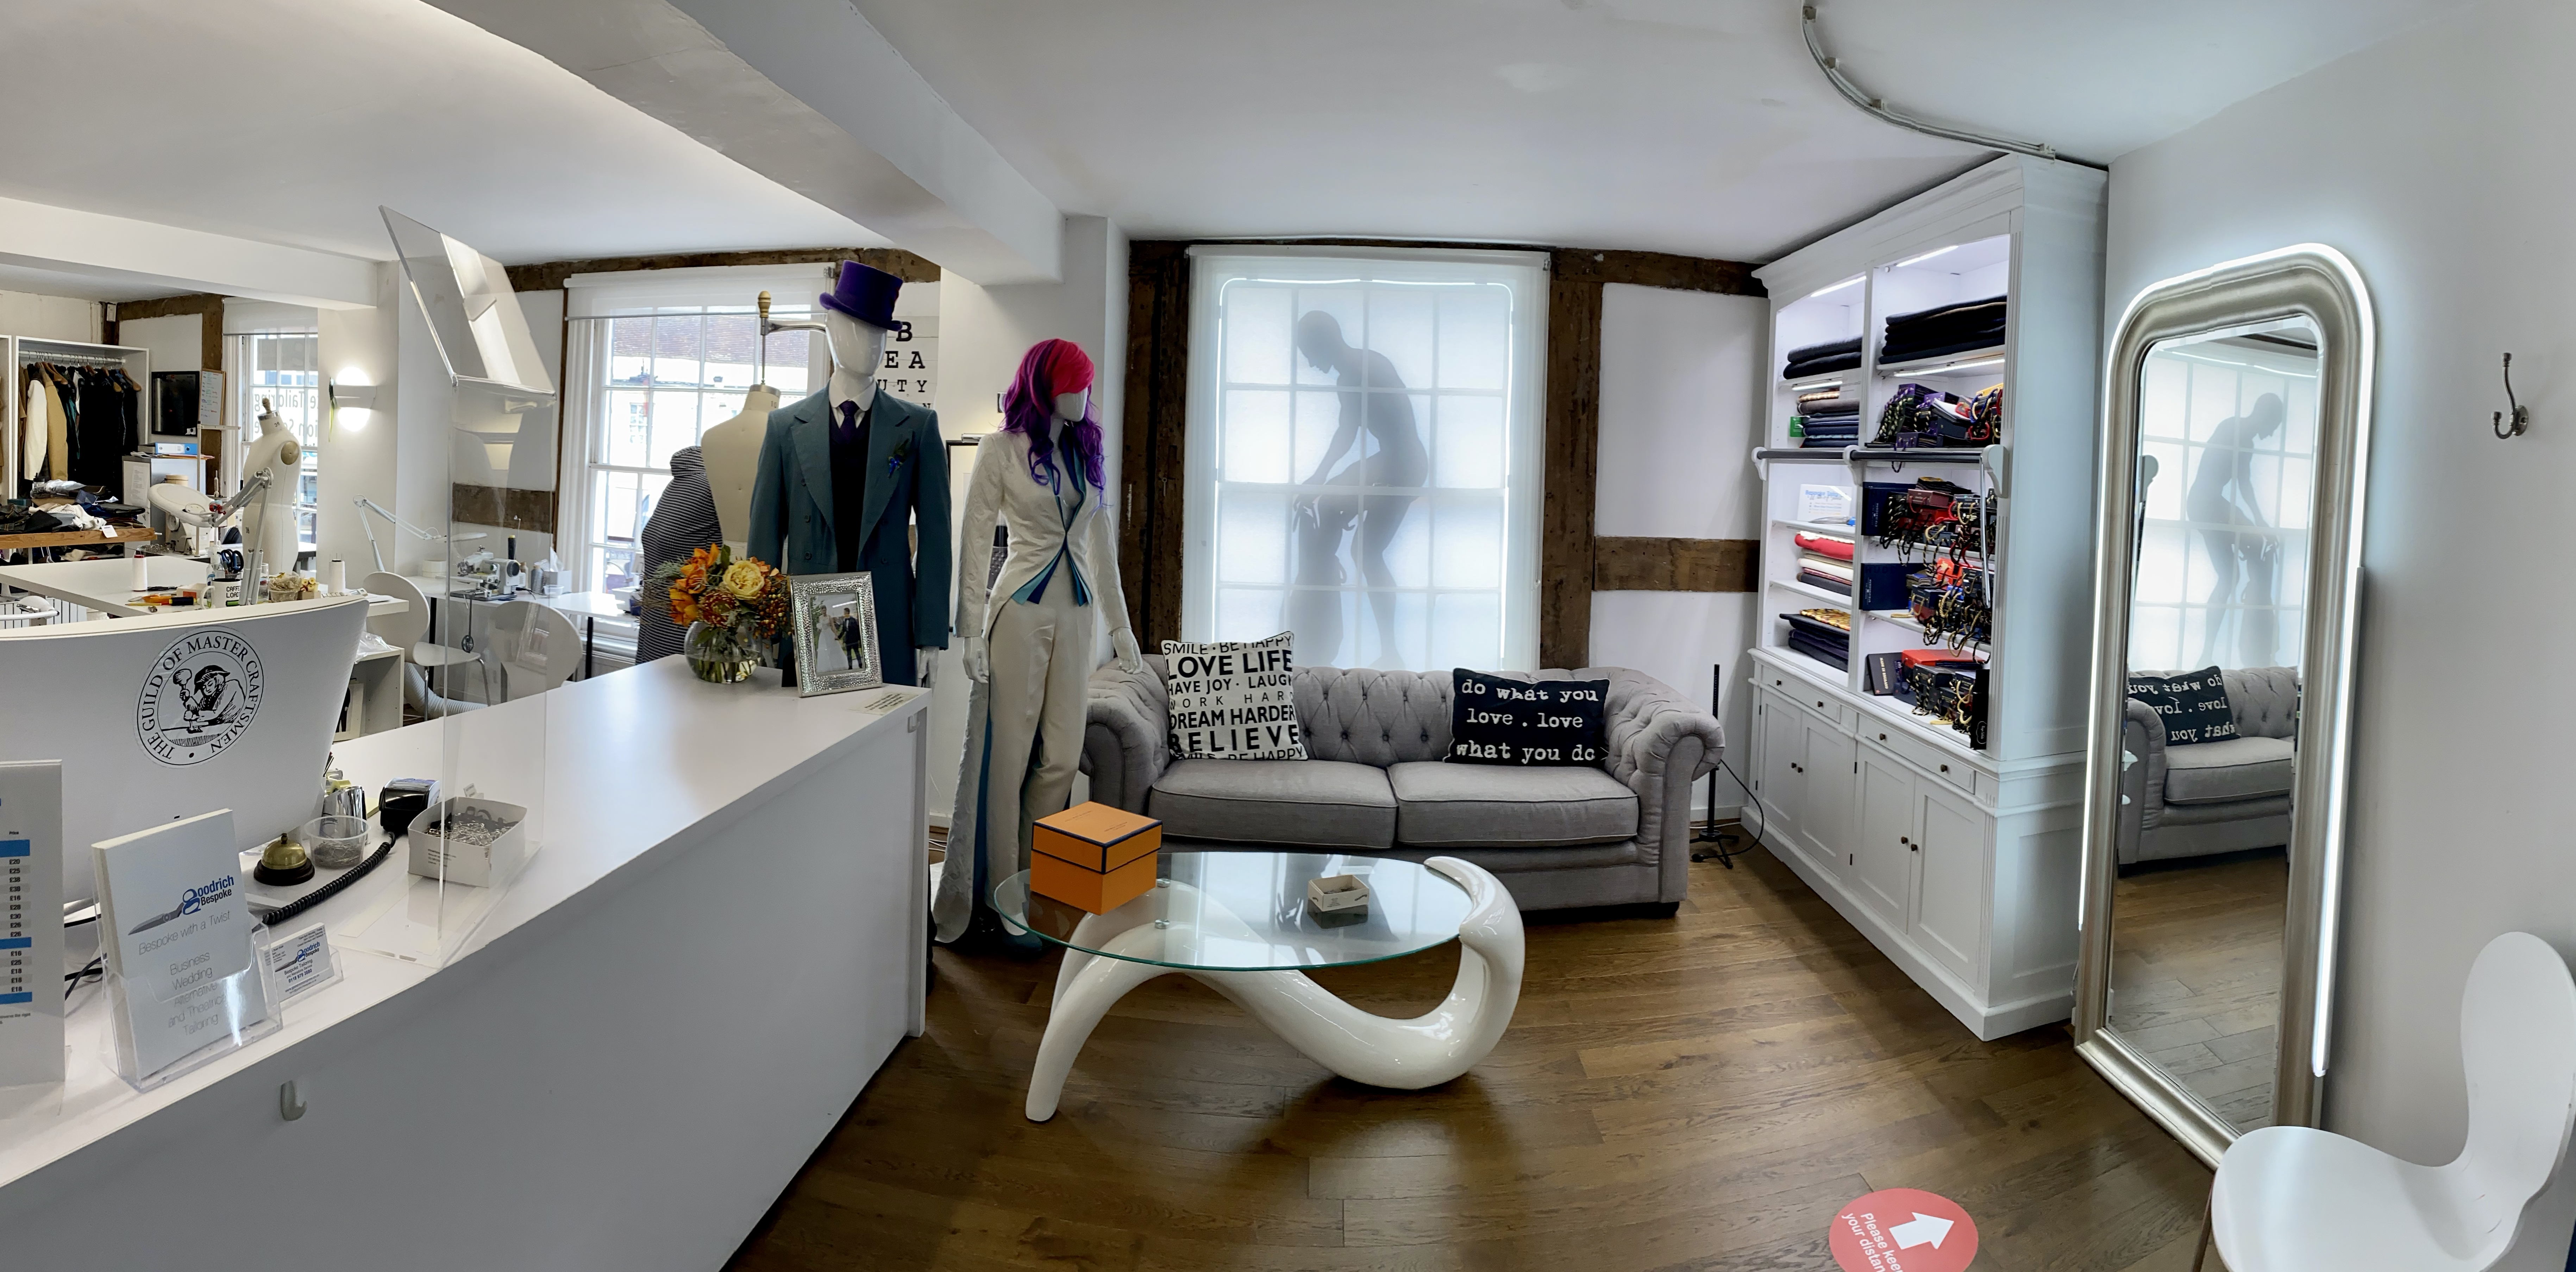 Customer area of Goodrich Bespoke providing bespoke tailoring and clothing alterations to the Wokingham and wider area